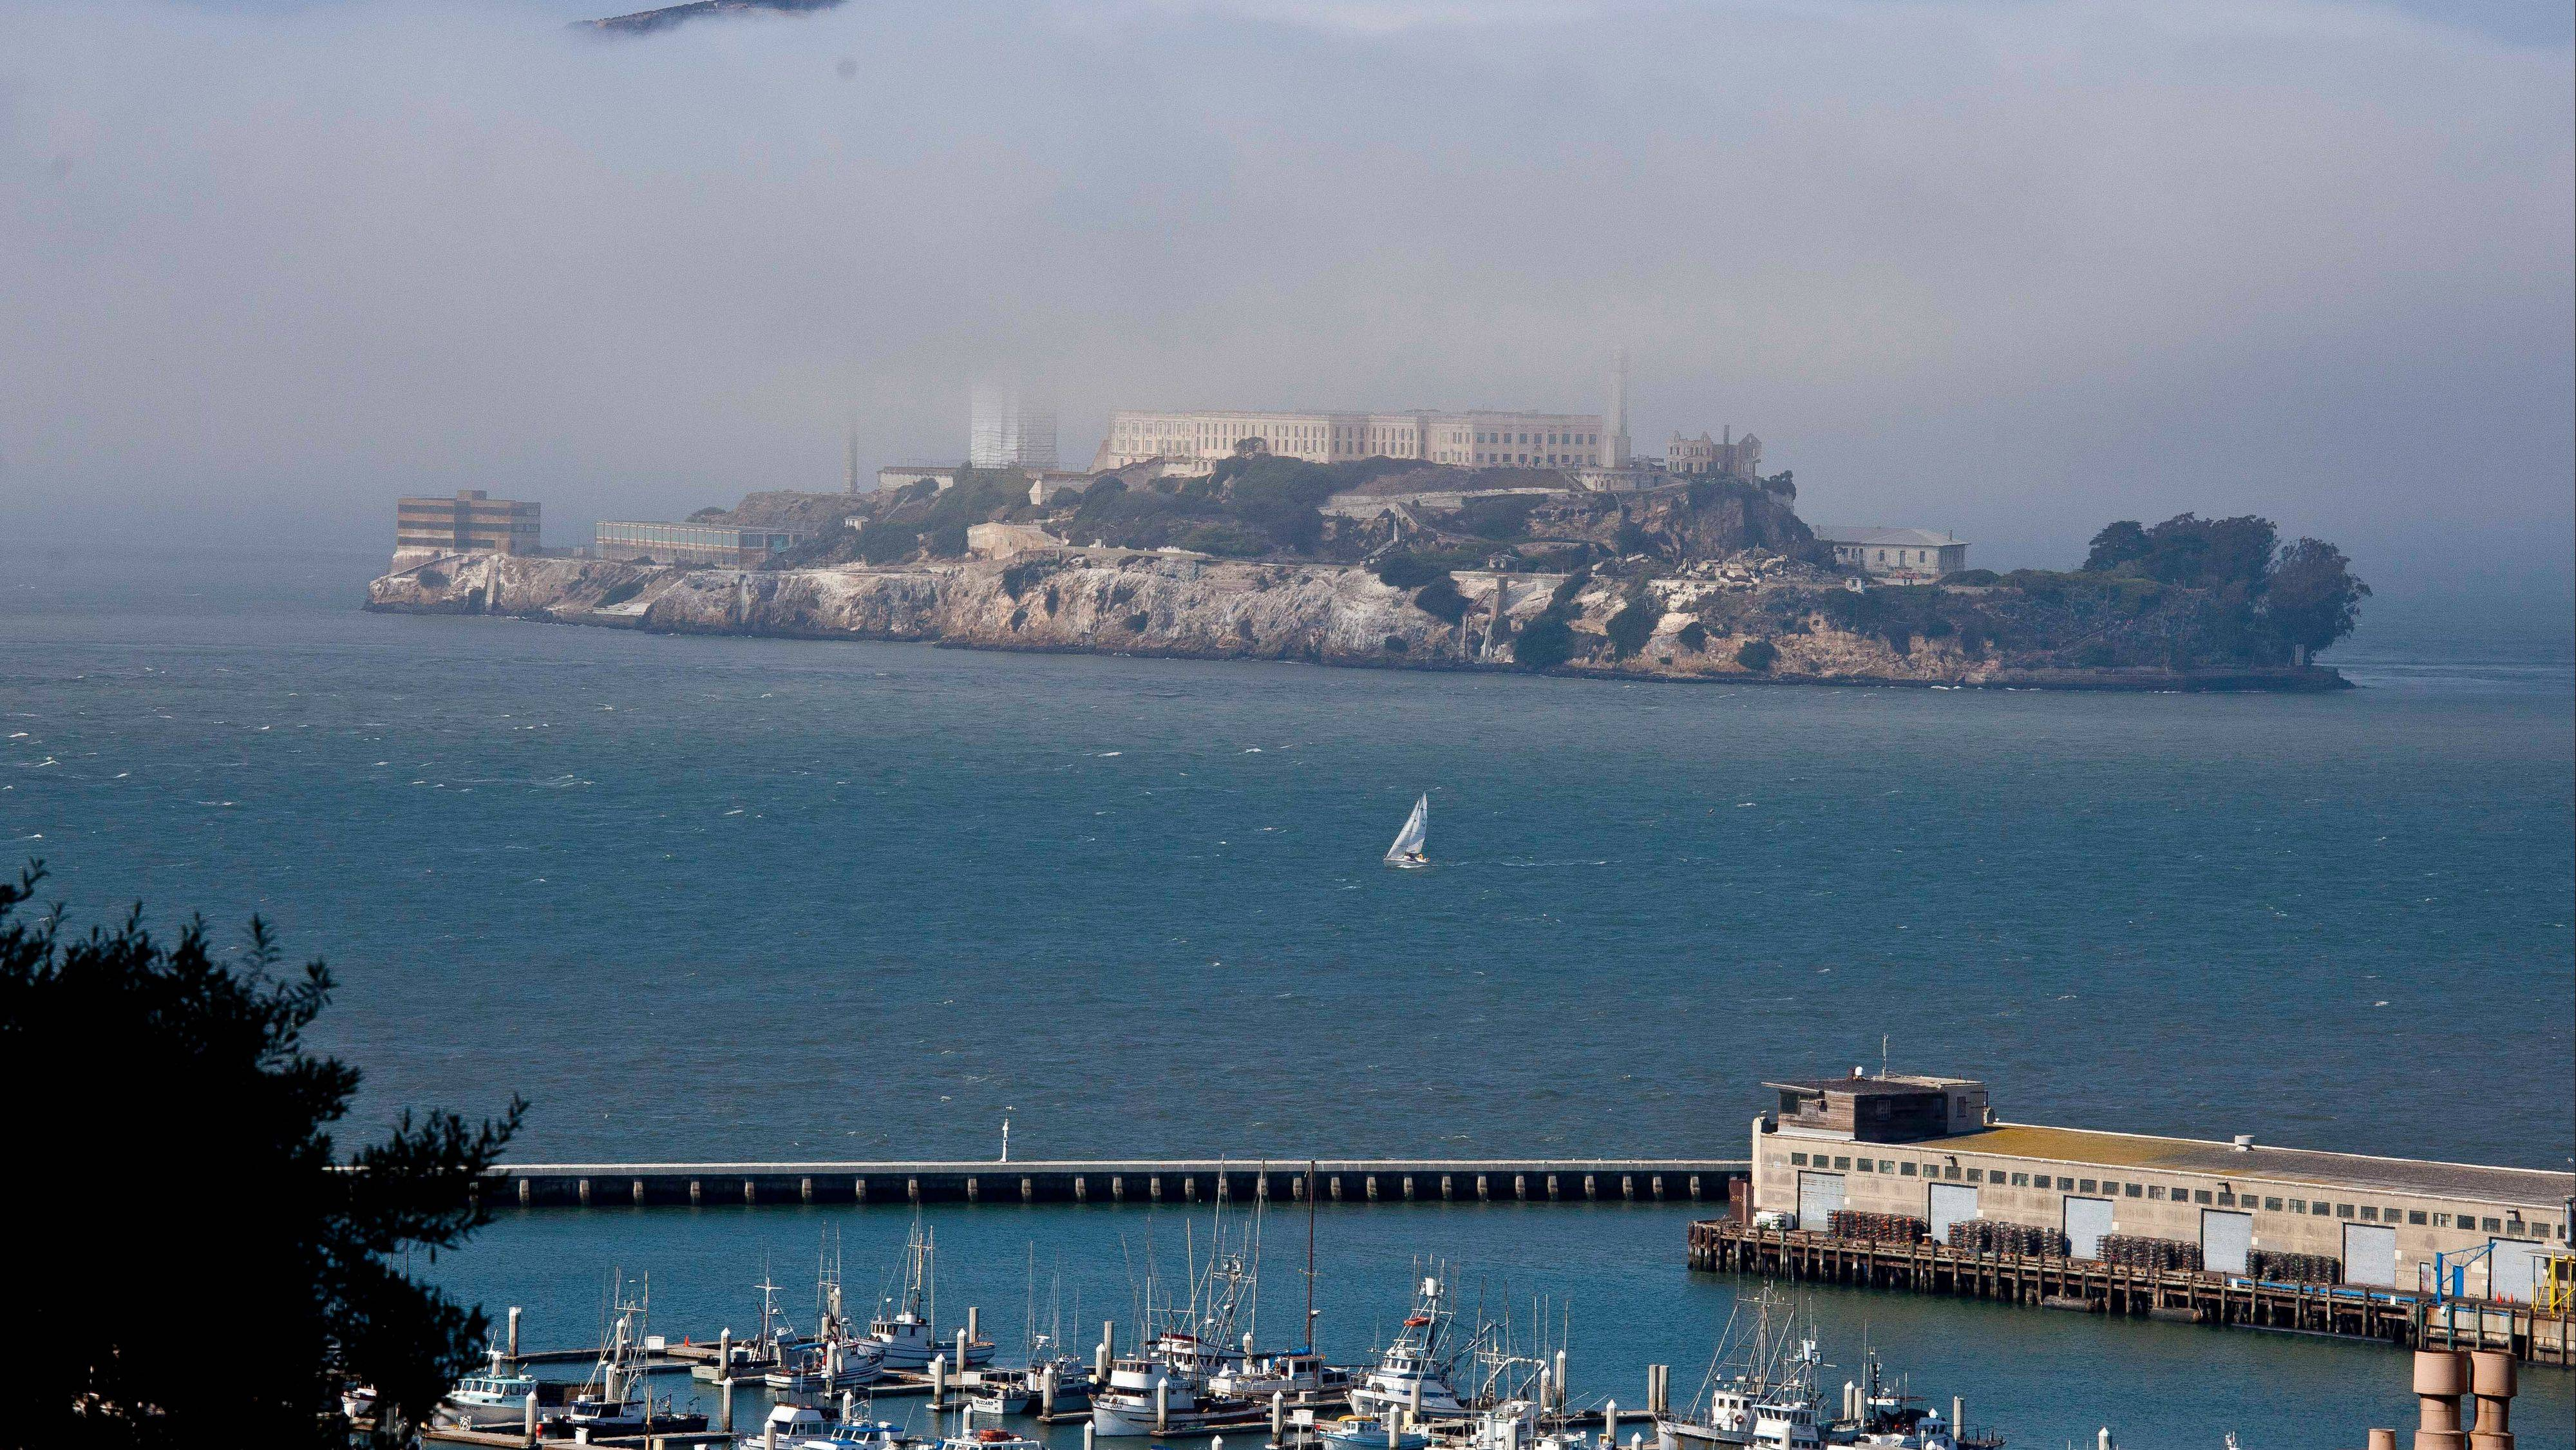 A sailboat makes its way past Alcatraz Island in San Francisco.